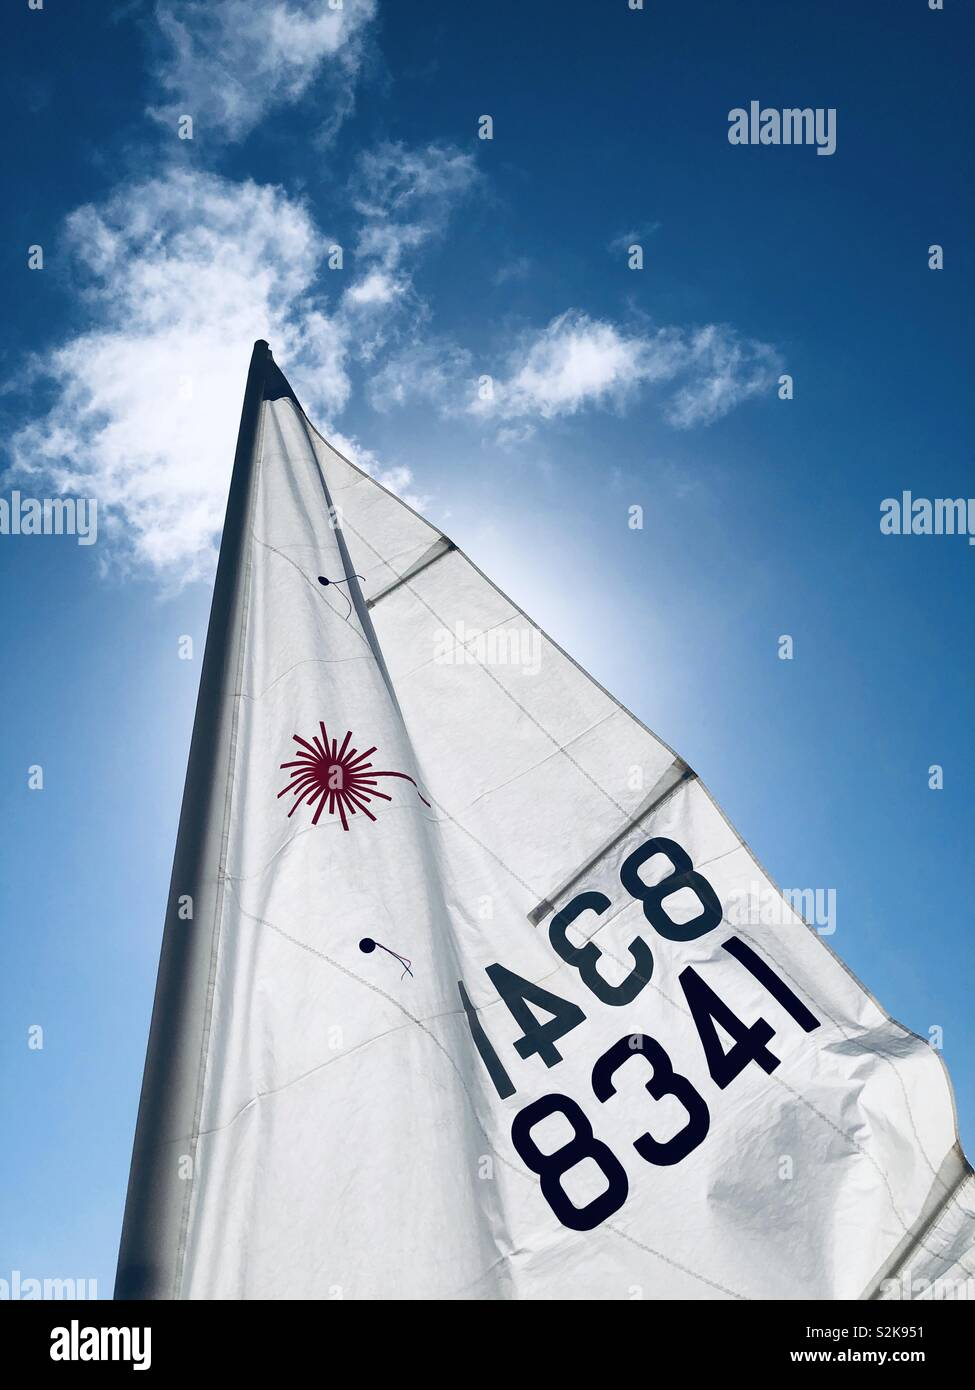 Top of a mainsail backlit by the sun - Stock Image